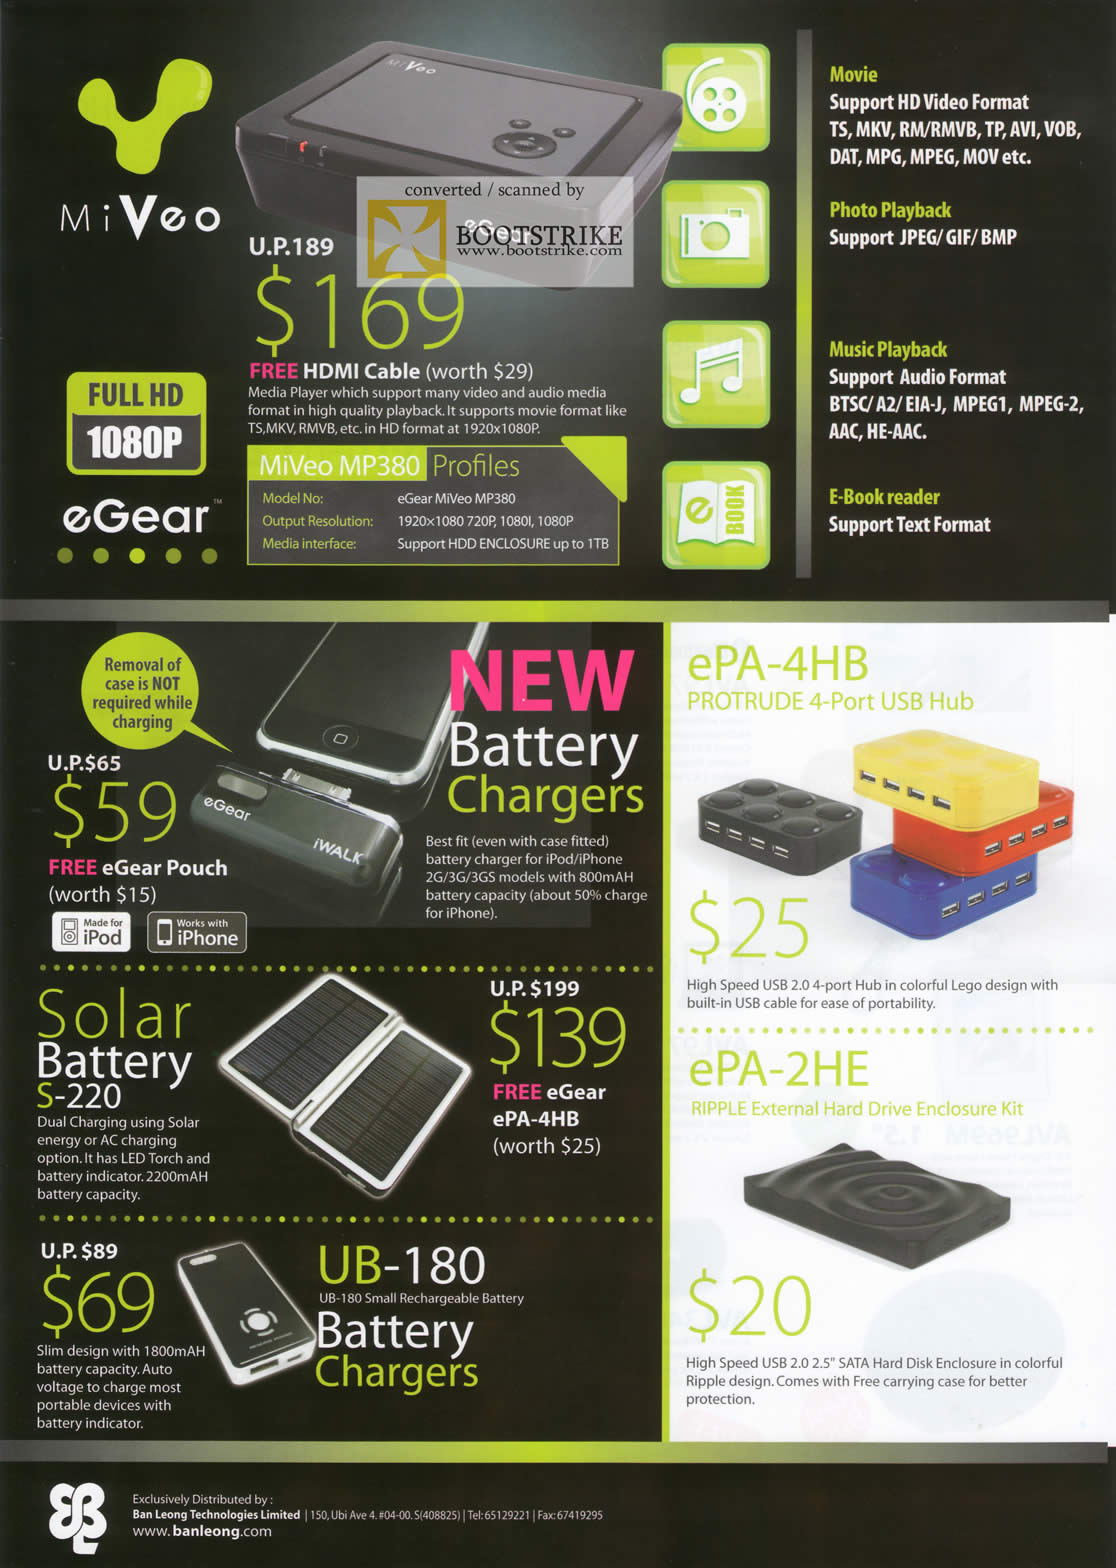 Comex 2009 price list image brochure of MiVeo Media Player MP380 EPA 4HB 2HE Solar Battery Chargers